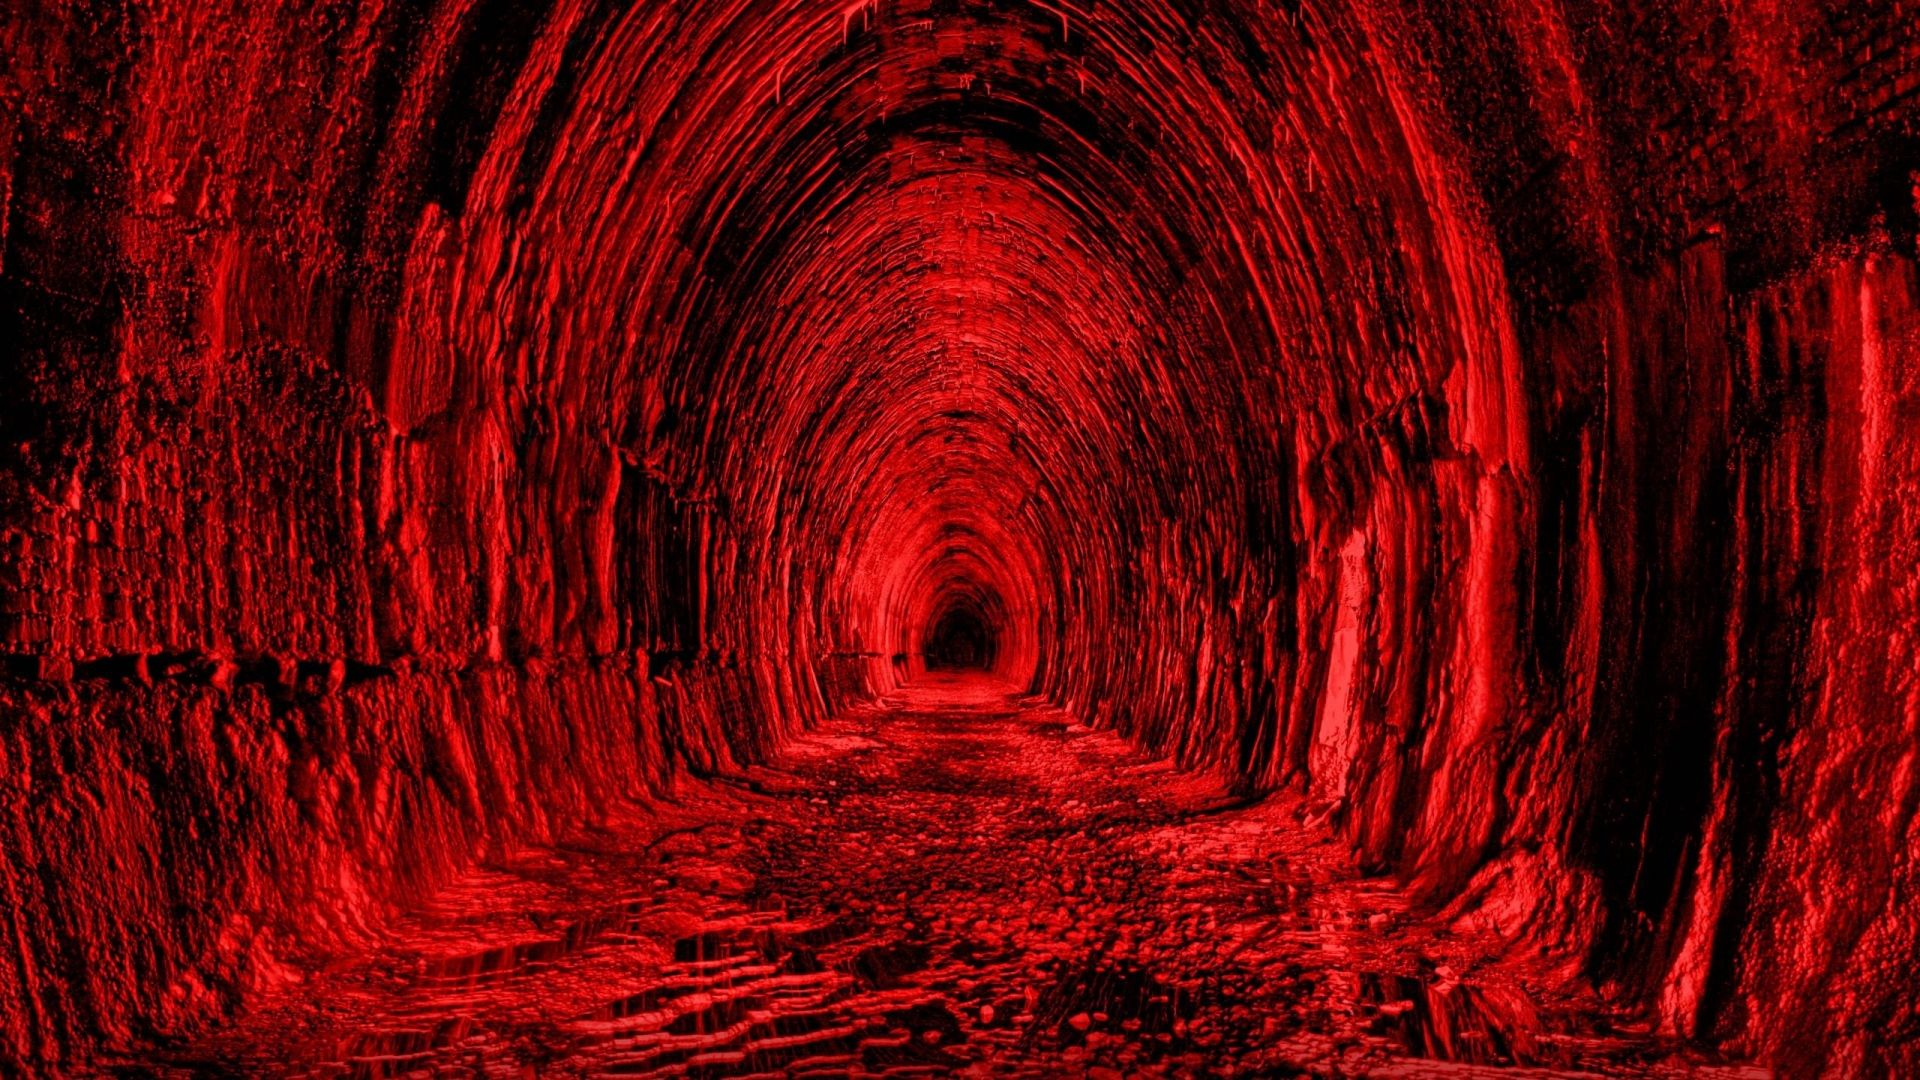 Download Wallpaper 1920x1080 Tunnel Red Black Light Full Hd 1080p